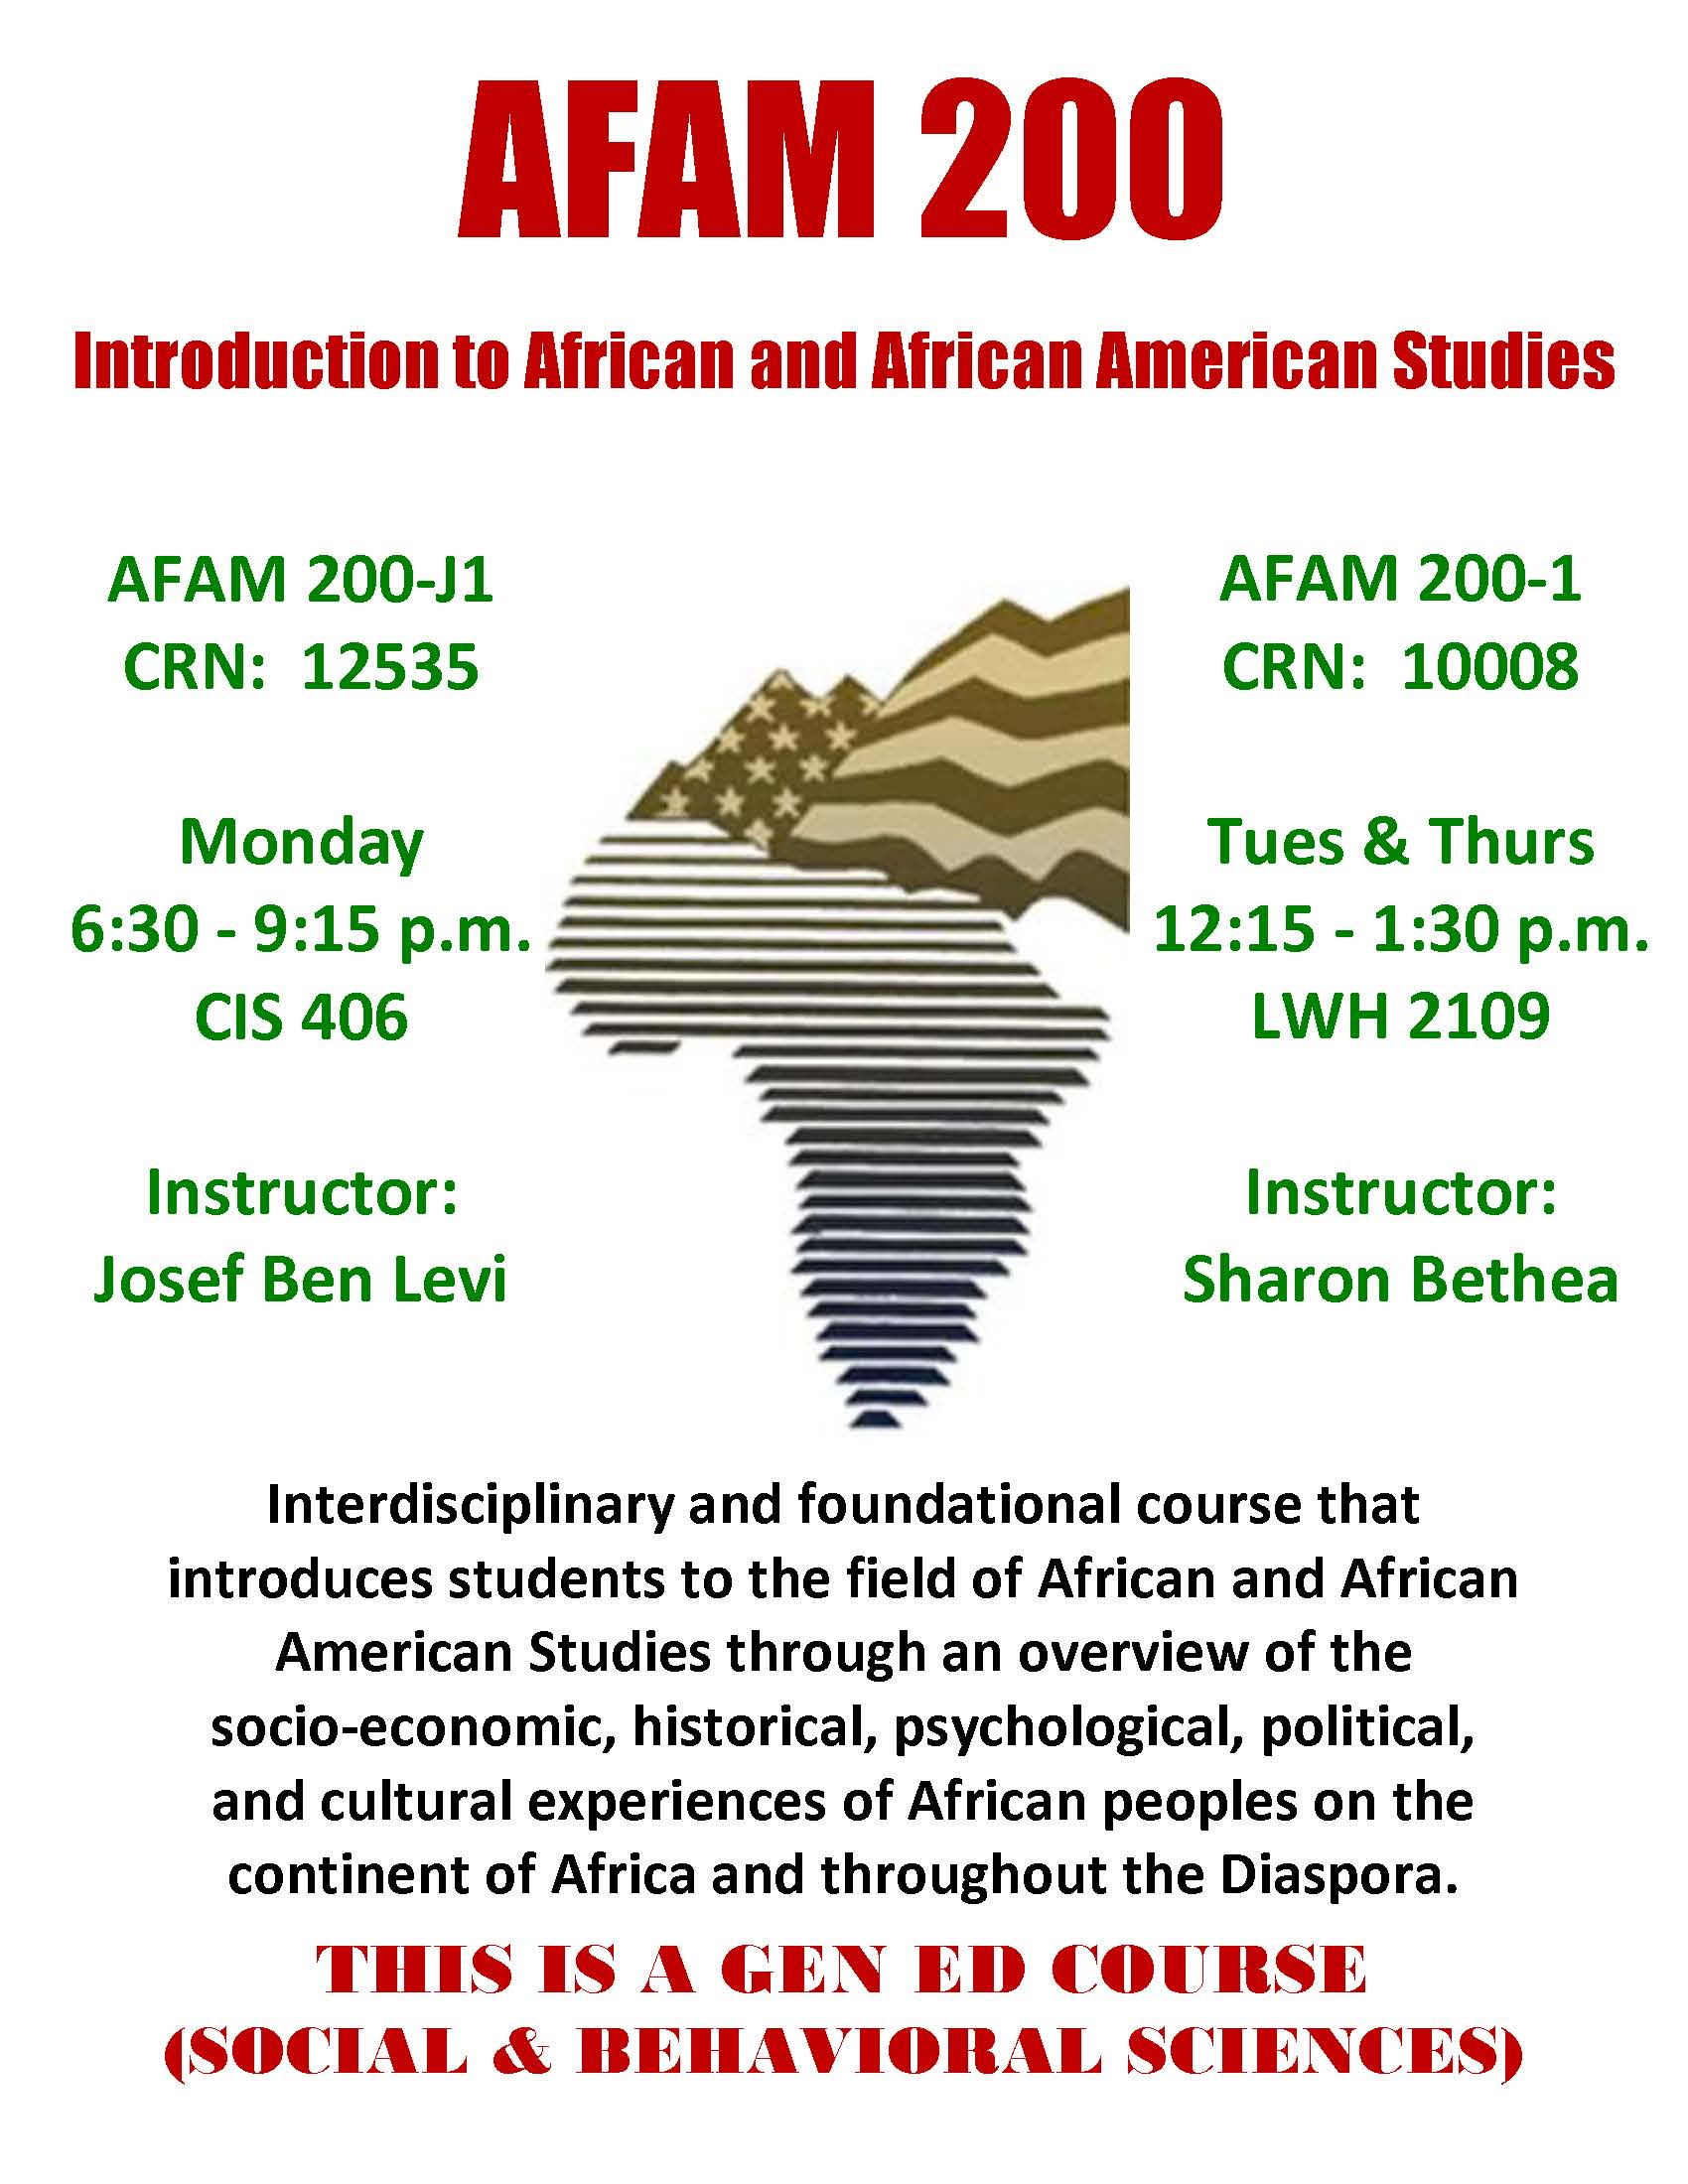 AFAM 200 INTRO TO AFRICAN & AFRICAN-AMERICAN STUDIES